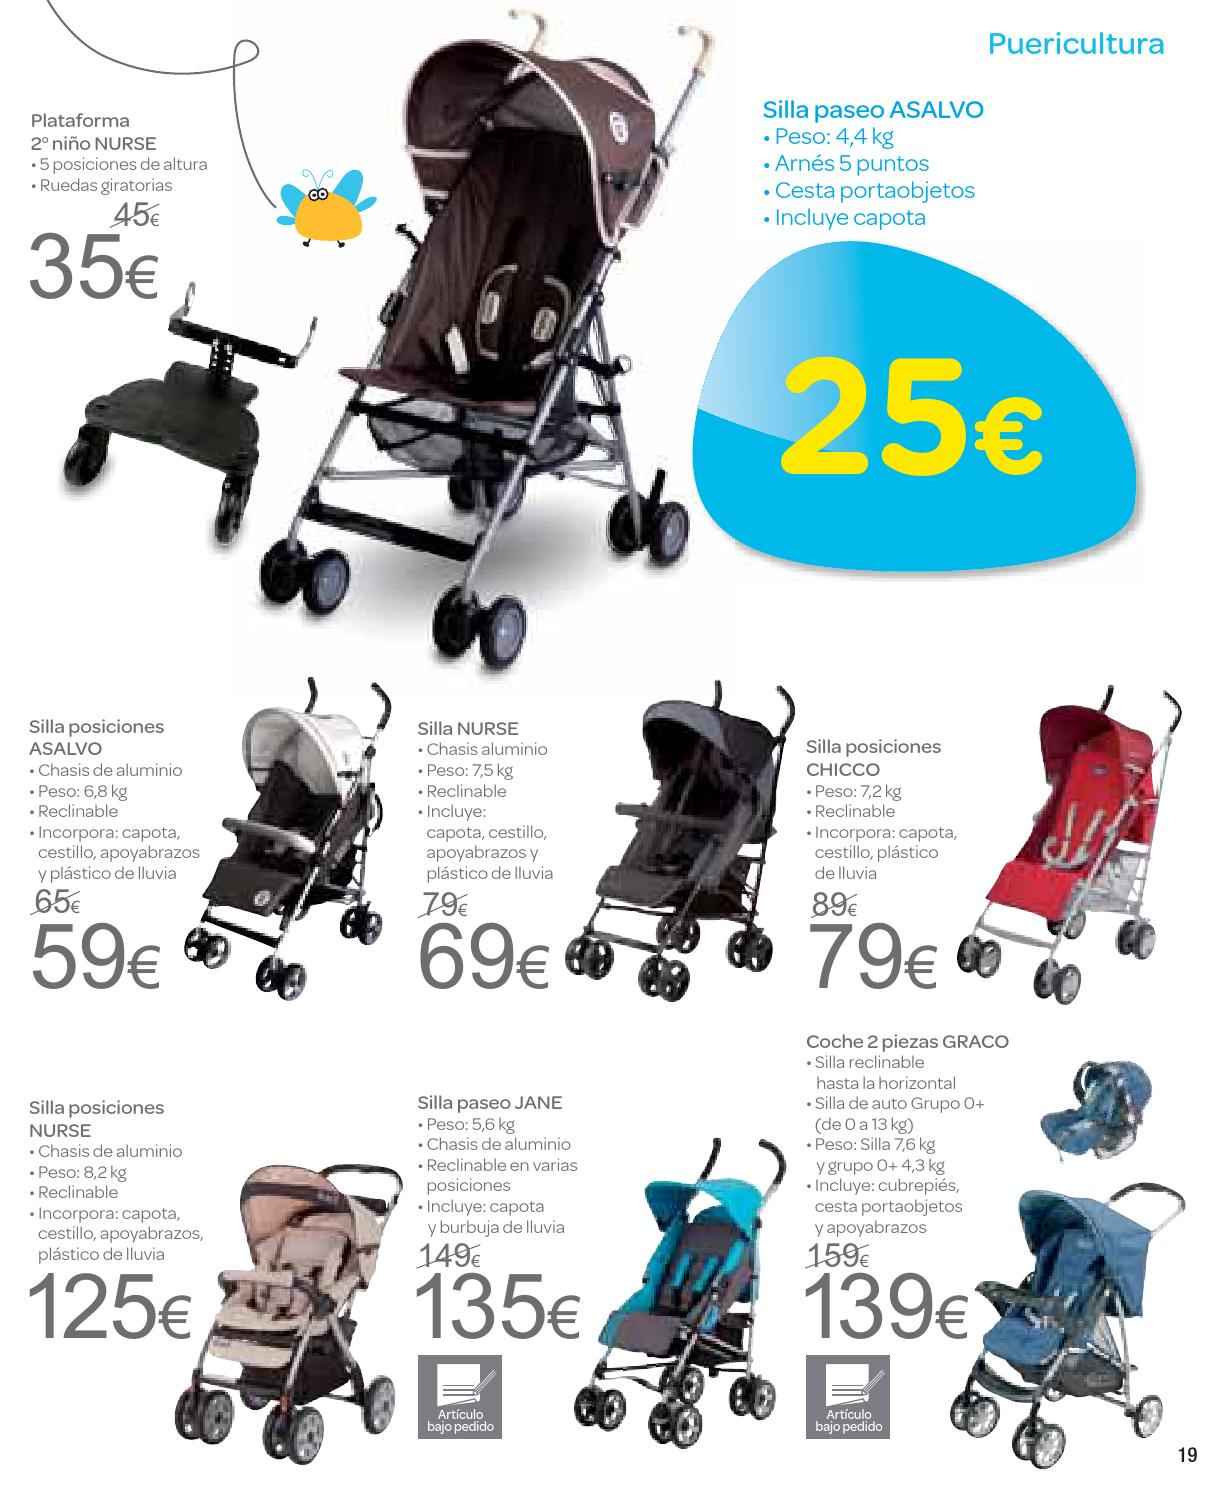 Silla Para Coche Carrefour Catalogo Carrefour Bebe Septiembre 2013 By Carrefour Online Issuu